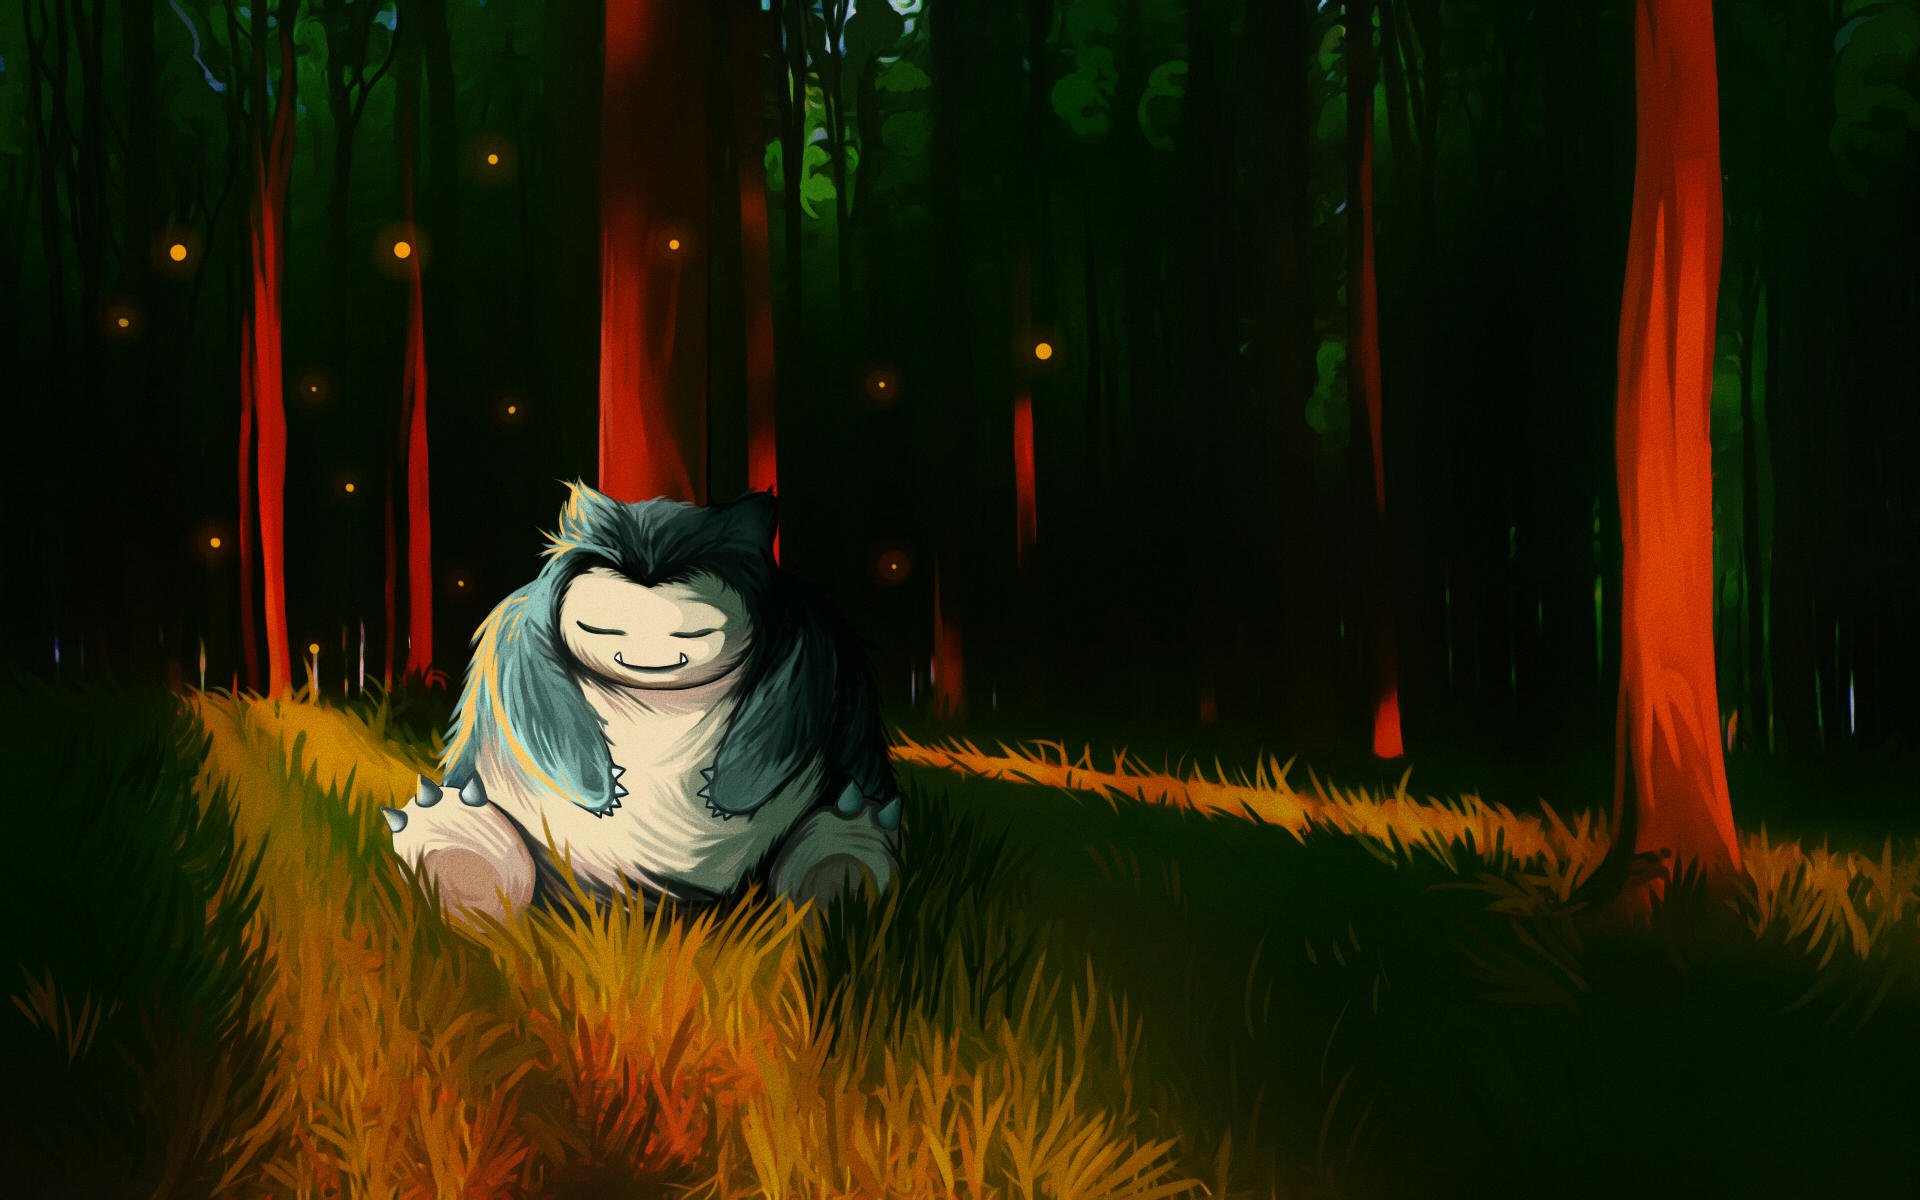 Snorlax by andrework